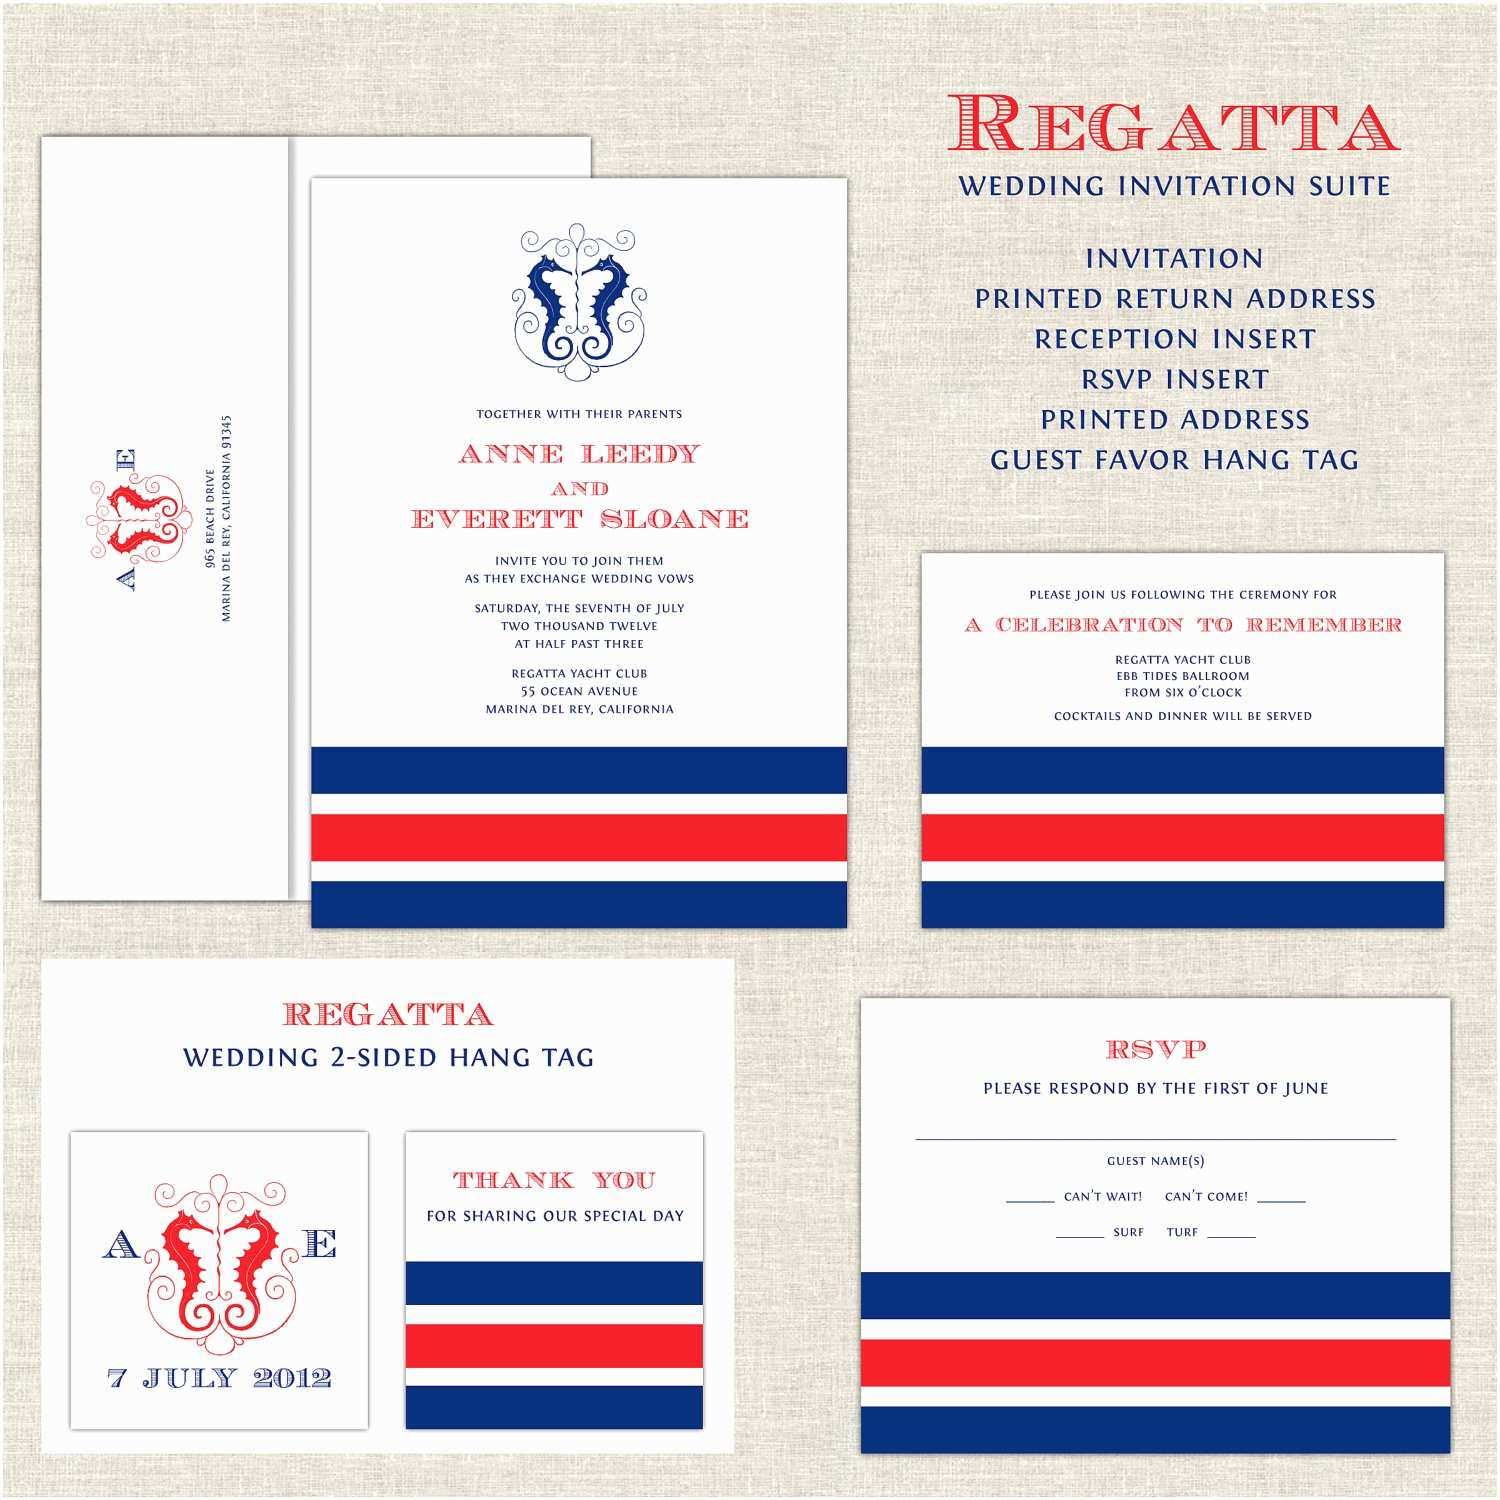 Yacht Wedding Invitation Wording Nautical Wedding Invitations Yacht Club Wedding Invitation